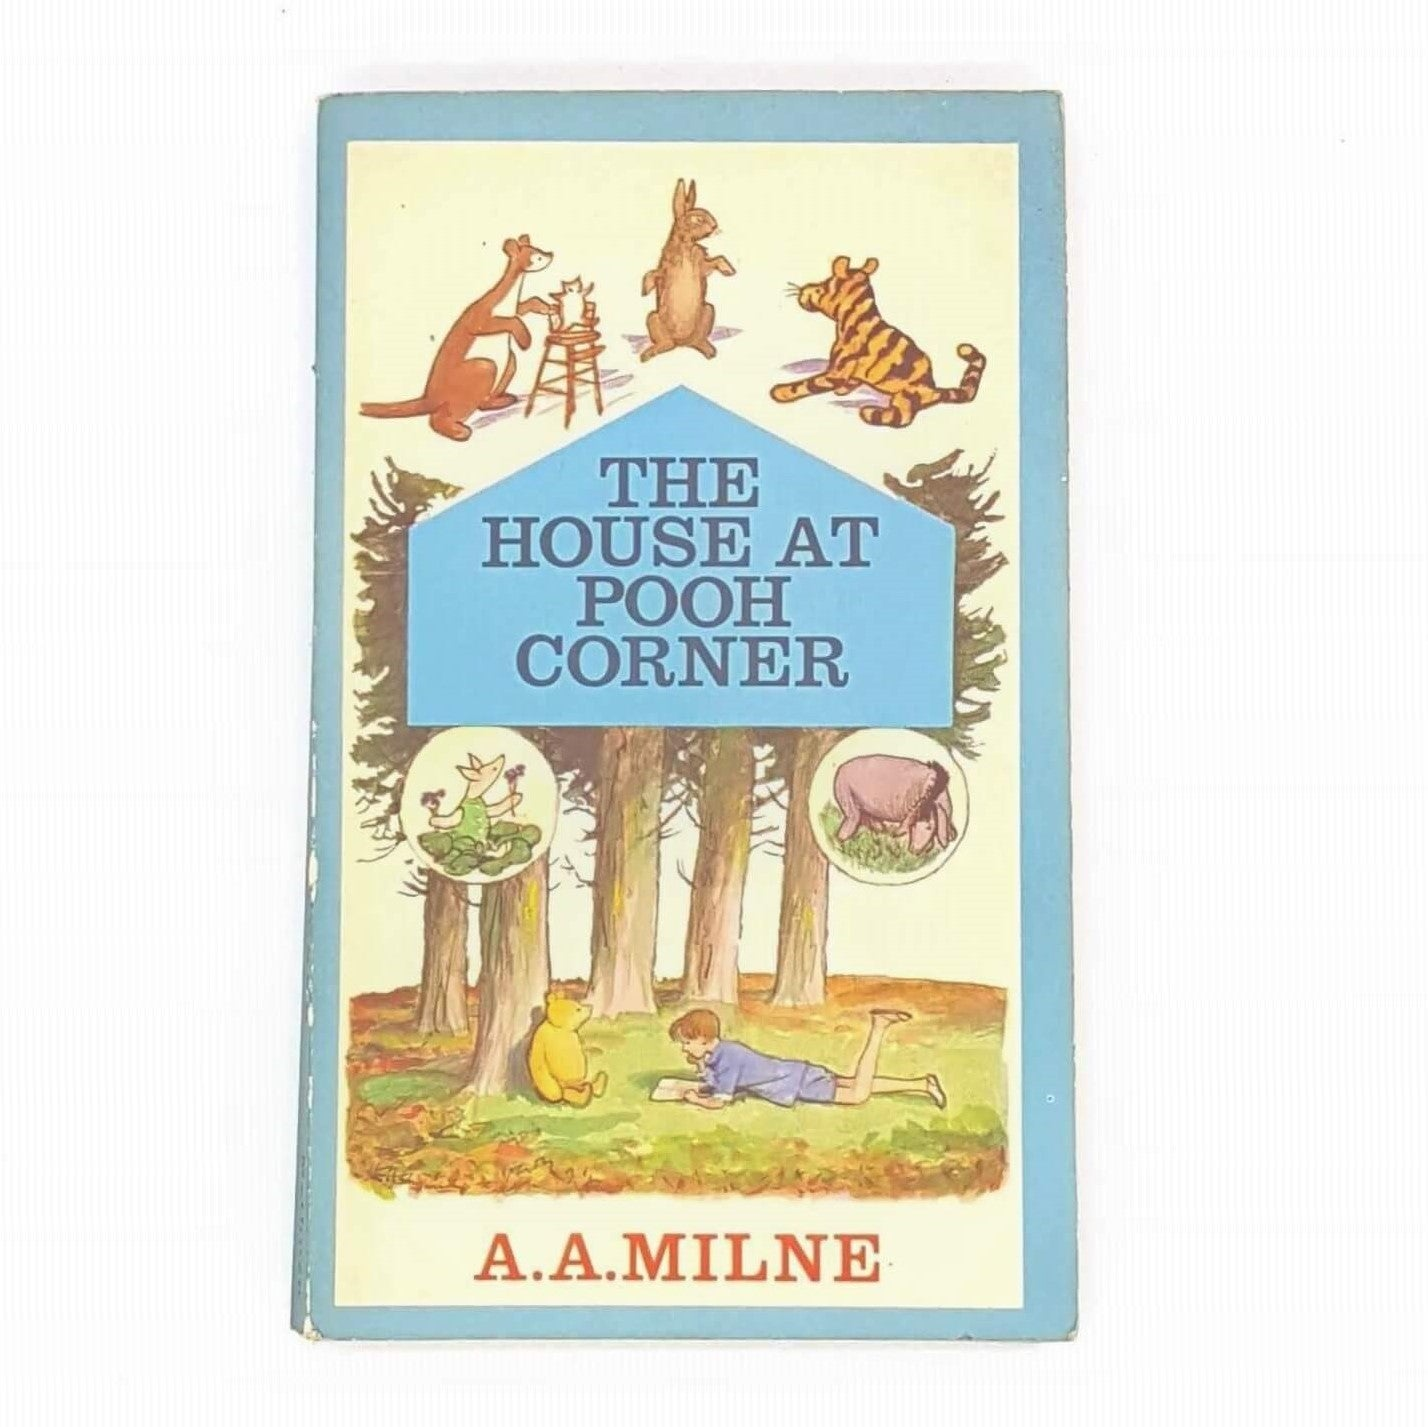 the-house-at-pooh-corner-a-a-milne